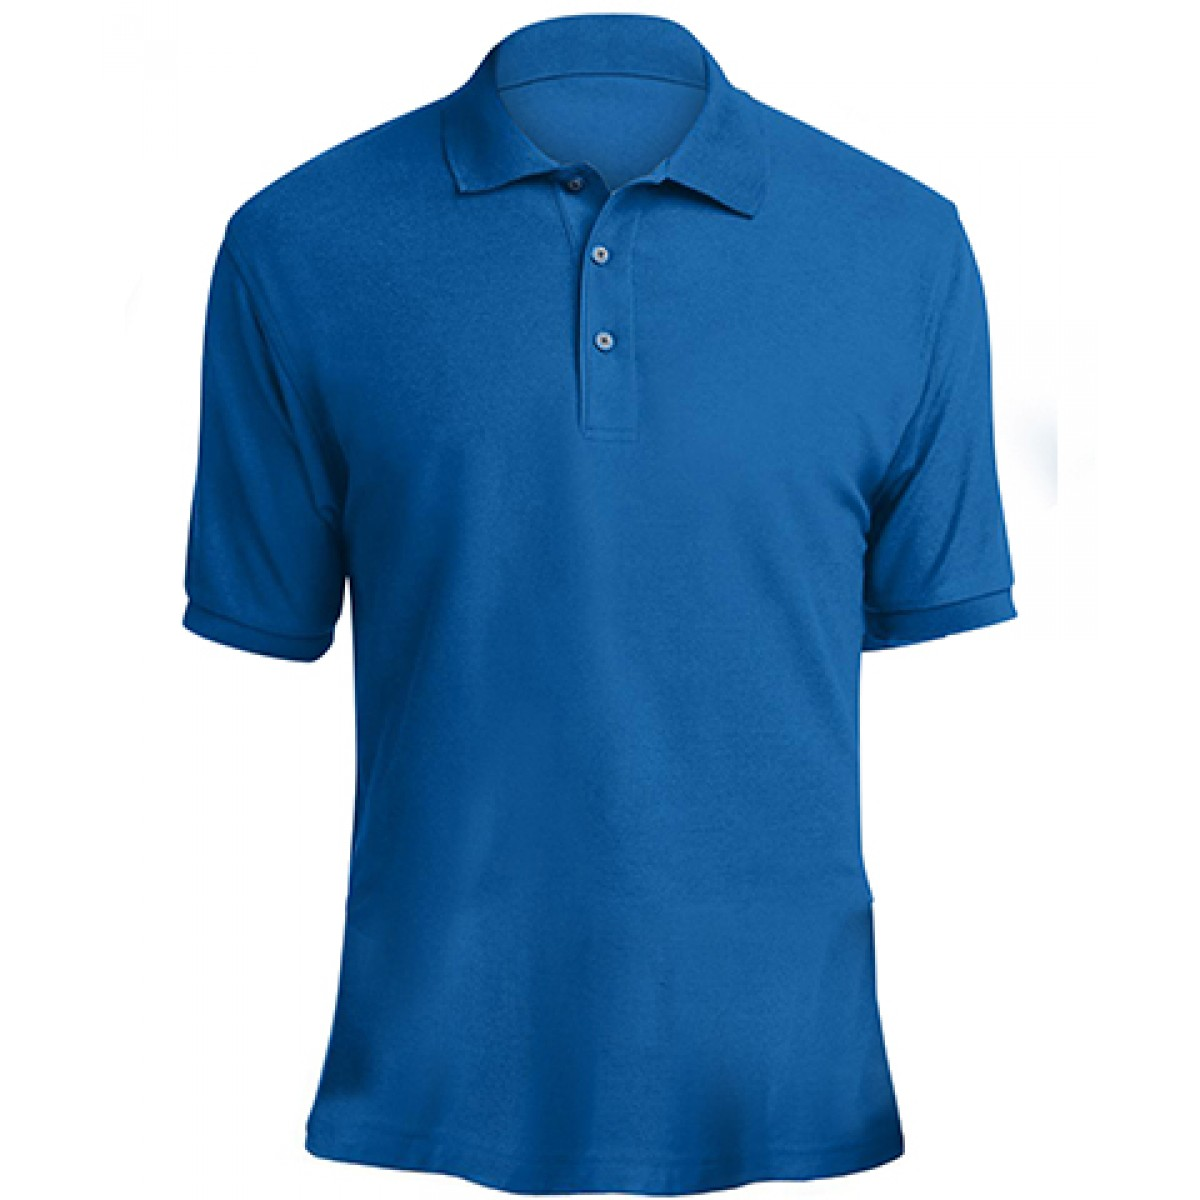 Womens Classic Polo -Royal Blue-XL